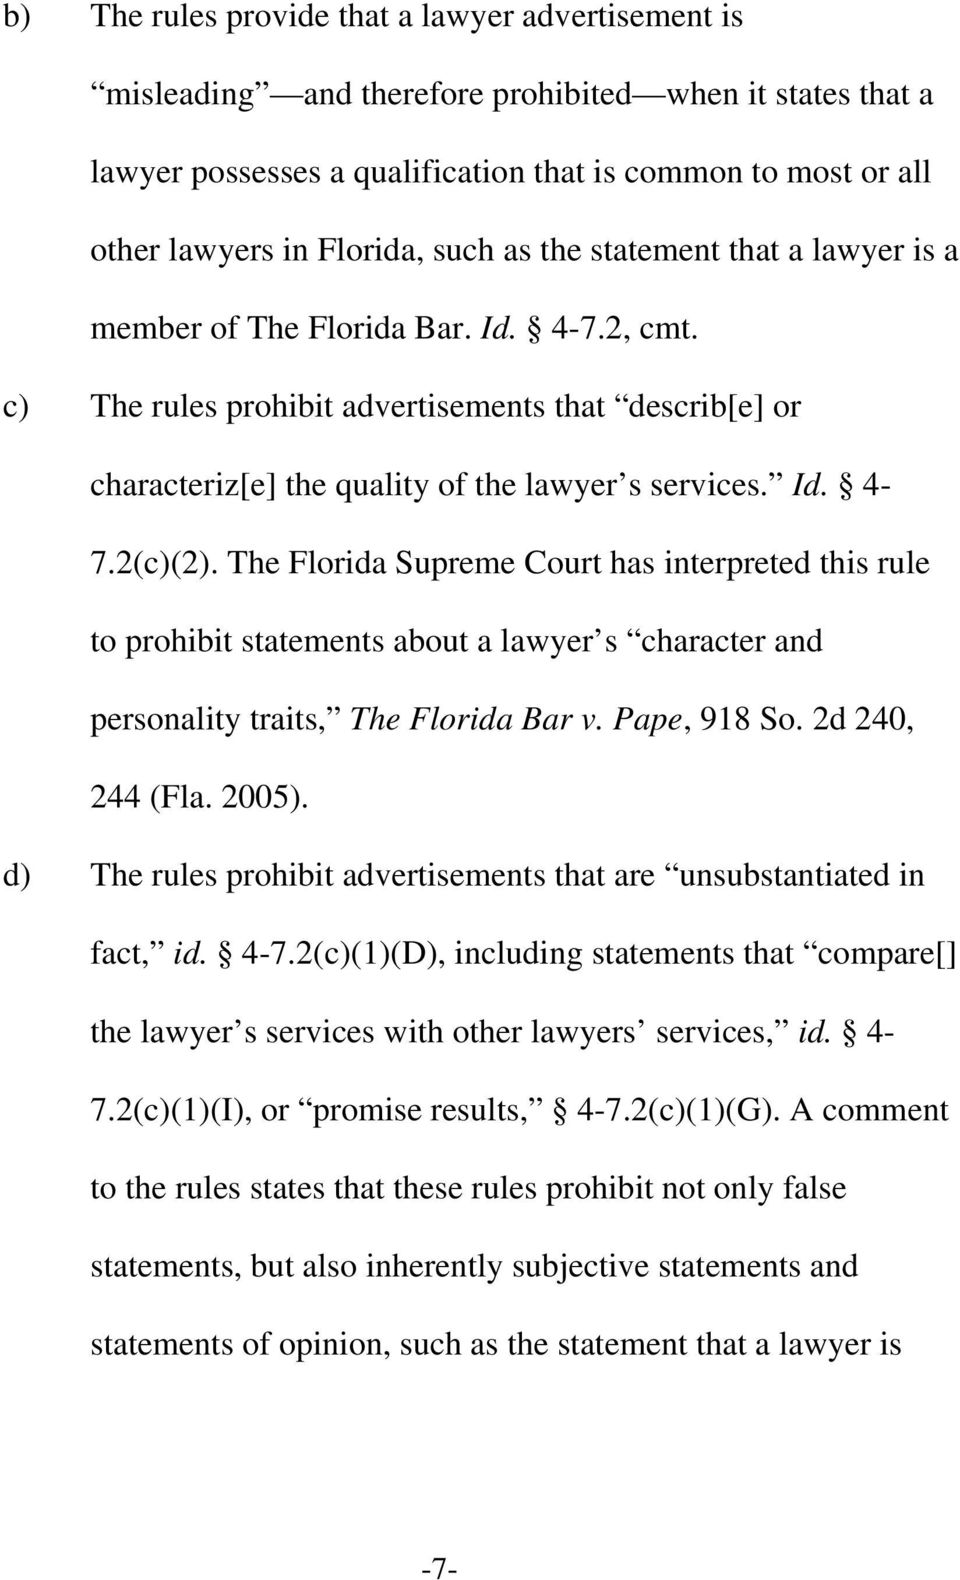 The Florida Supreme Court has interpreted this rule to prohibit statements about a lawyer s character and personality traits, The Florida Bar v. Pape, 918 So. 2d 240, 244 (Fla. 2005).